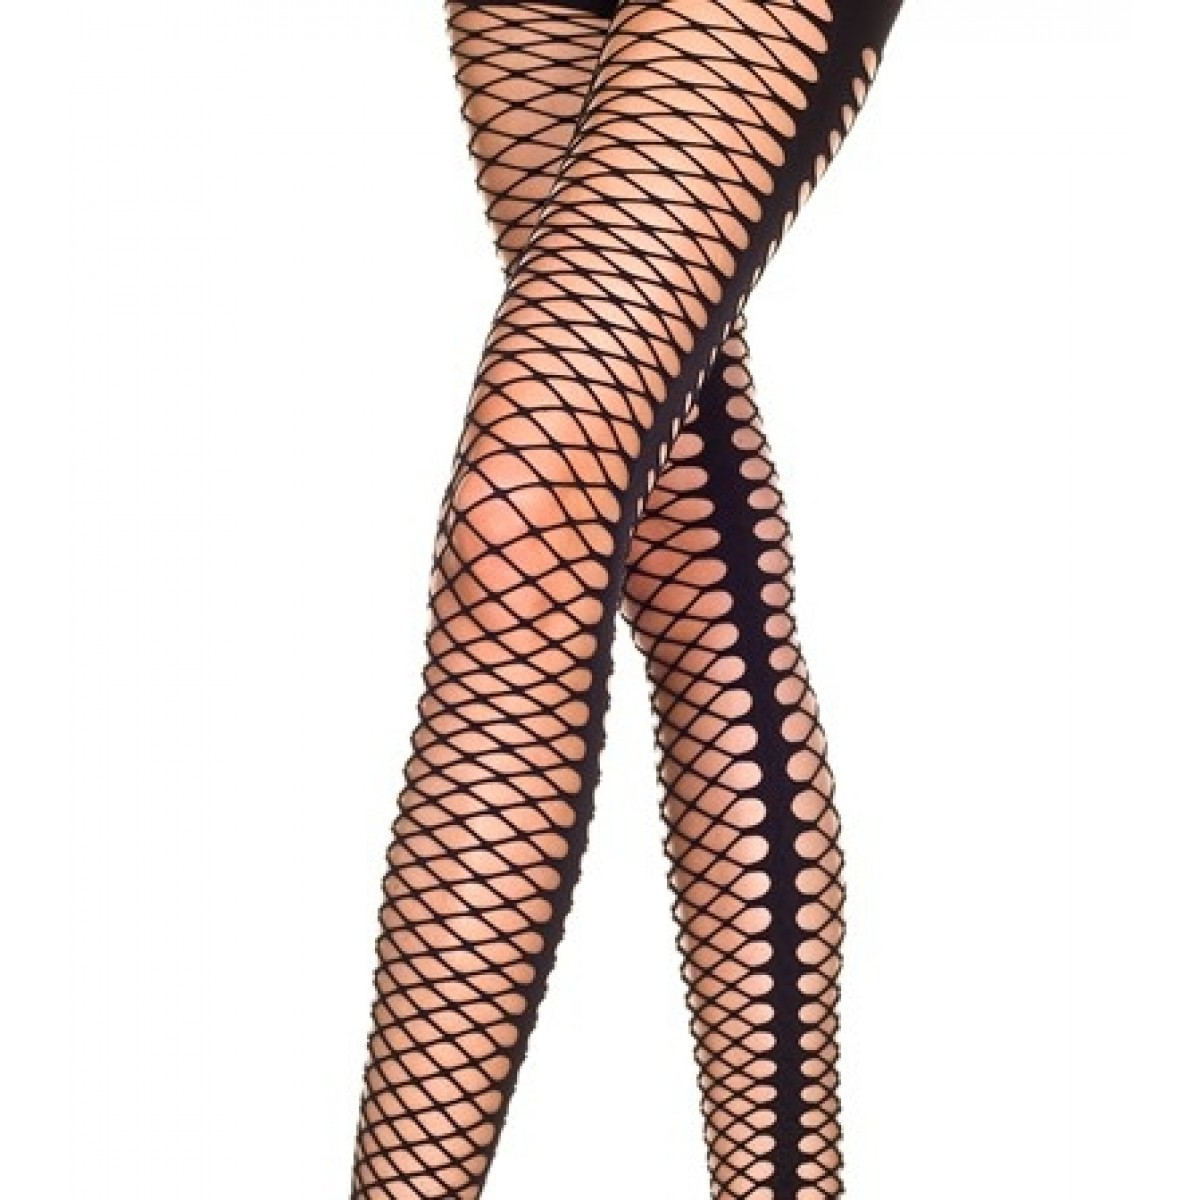 Black net leggings-01